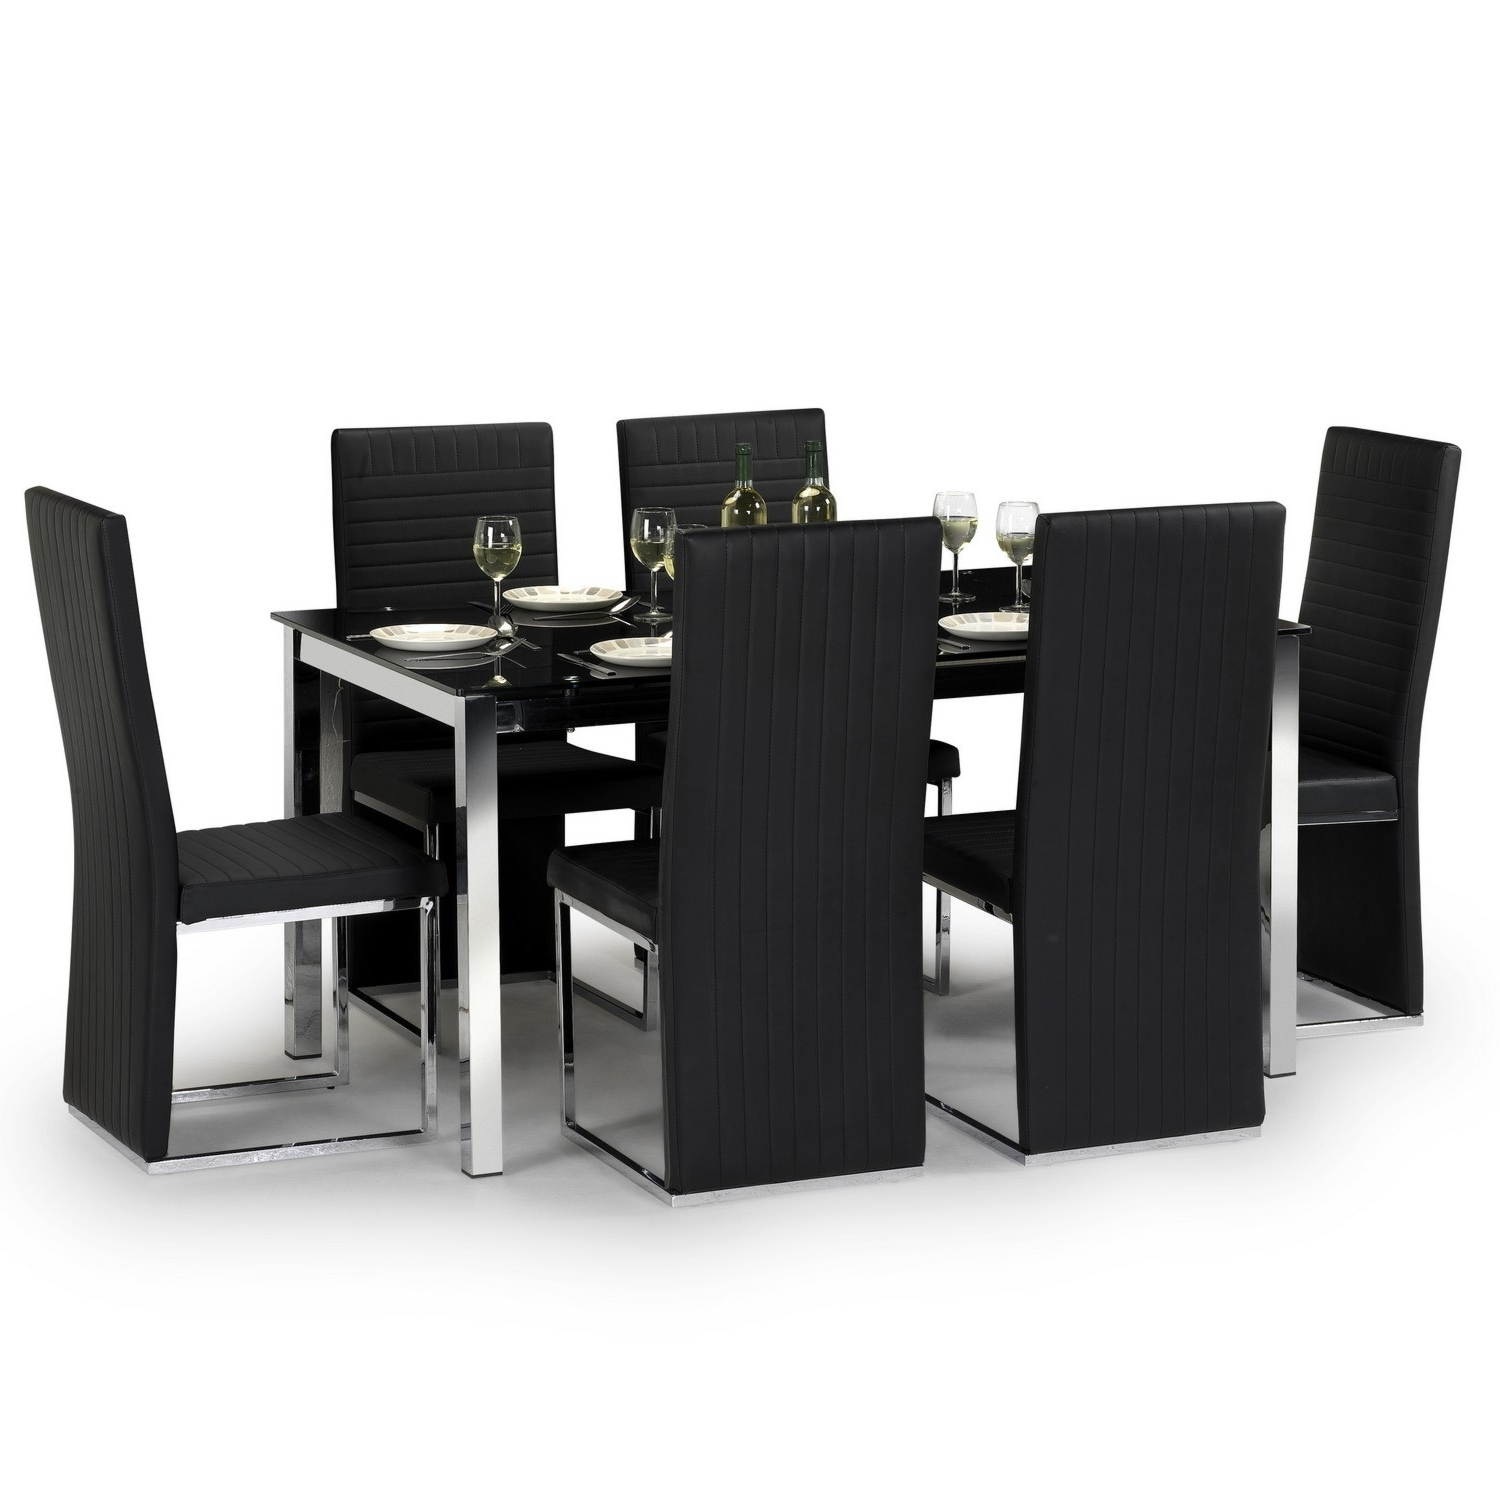 Widely Used Tempo Dining Table And 6 Chairs Within Scs Dining Room Furniture (View 25 of 25)